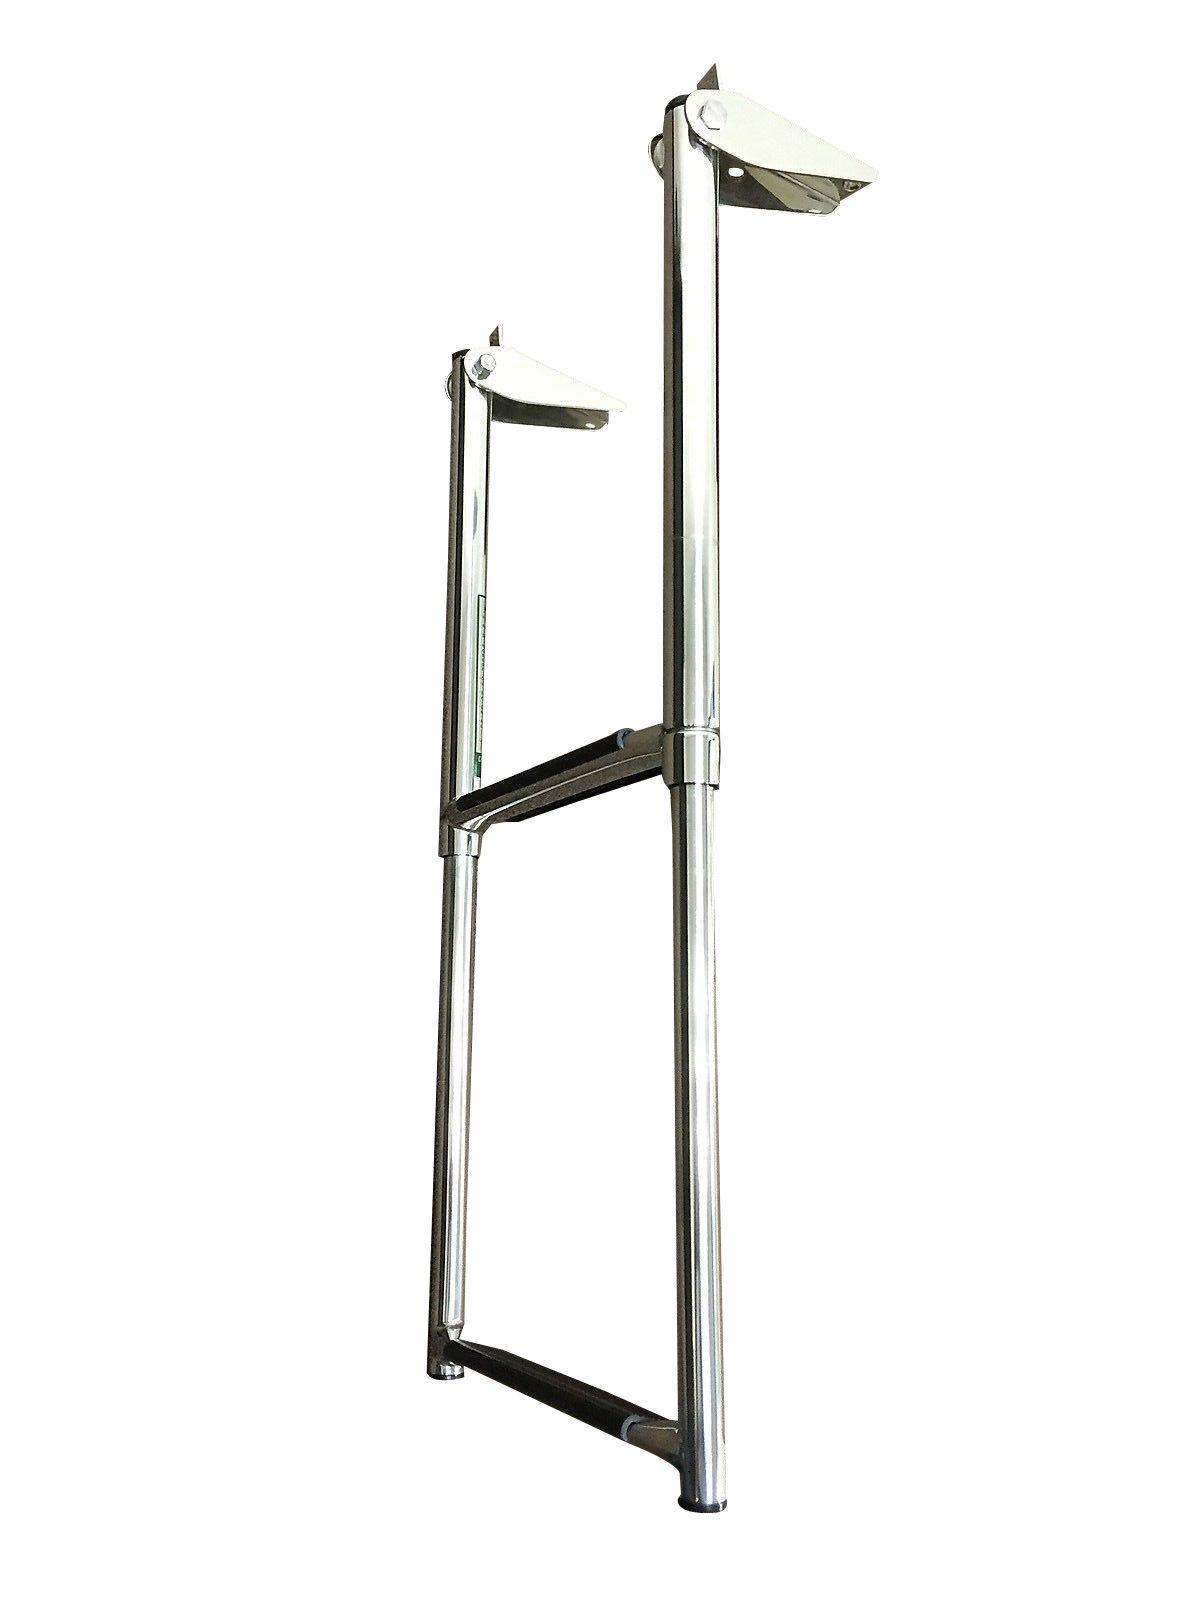 MARINE BOAT STAINLESS STEEL 2 STEP TELESCOPIC LADDER SWIM STEP O